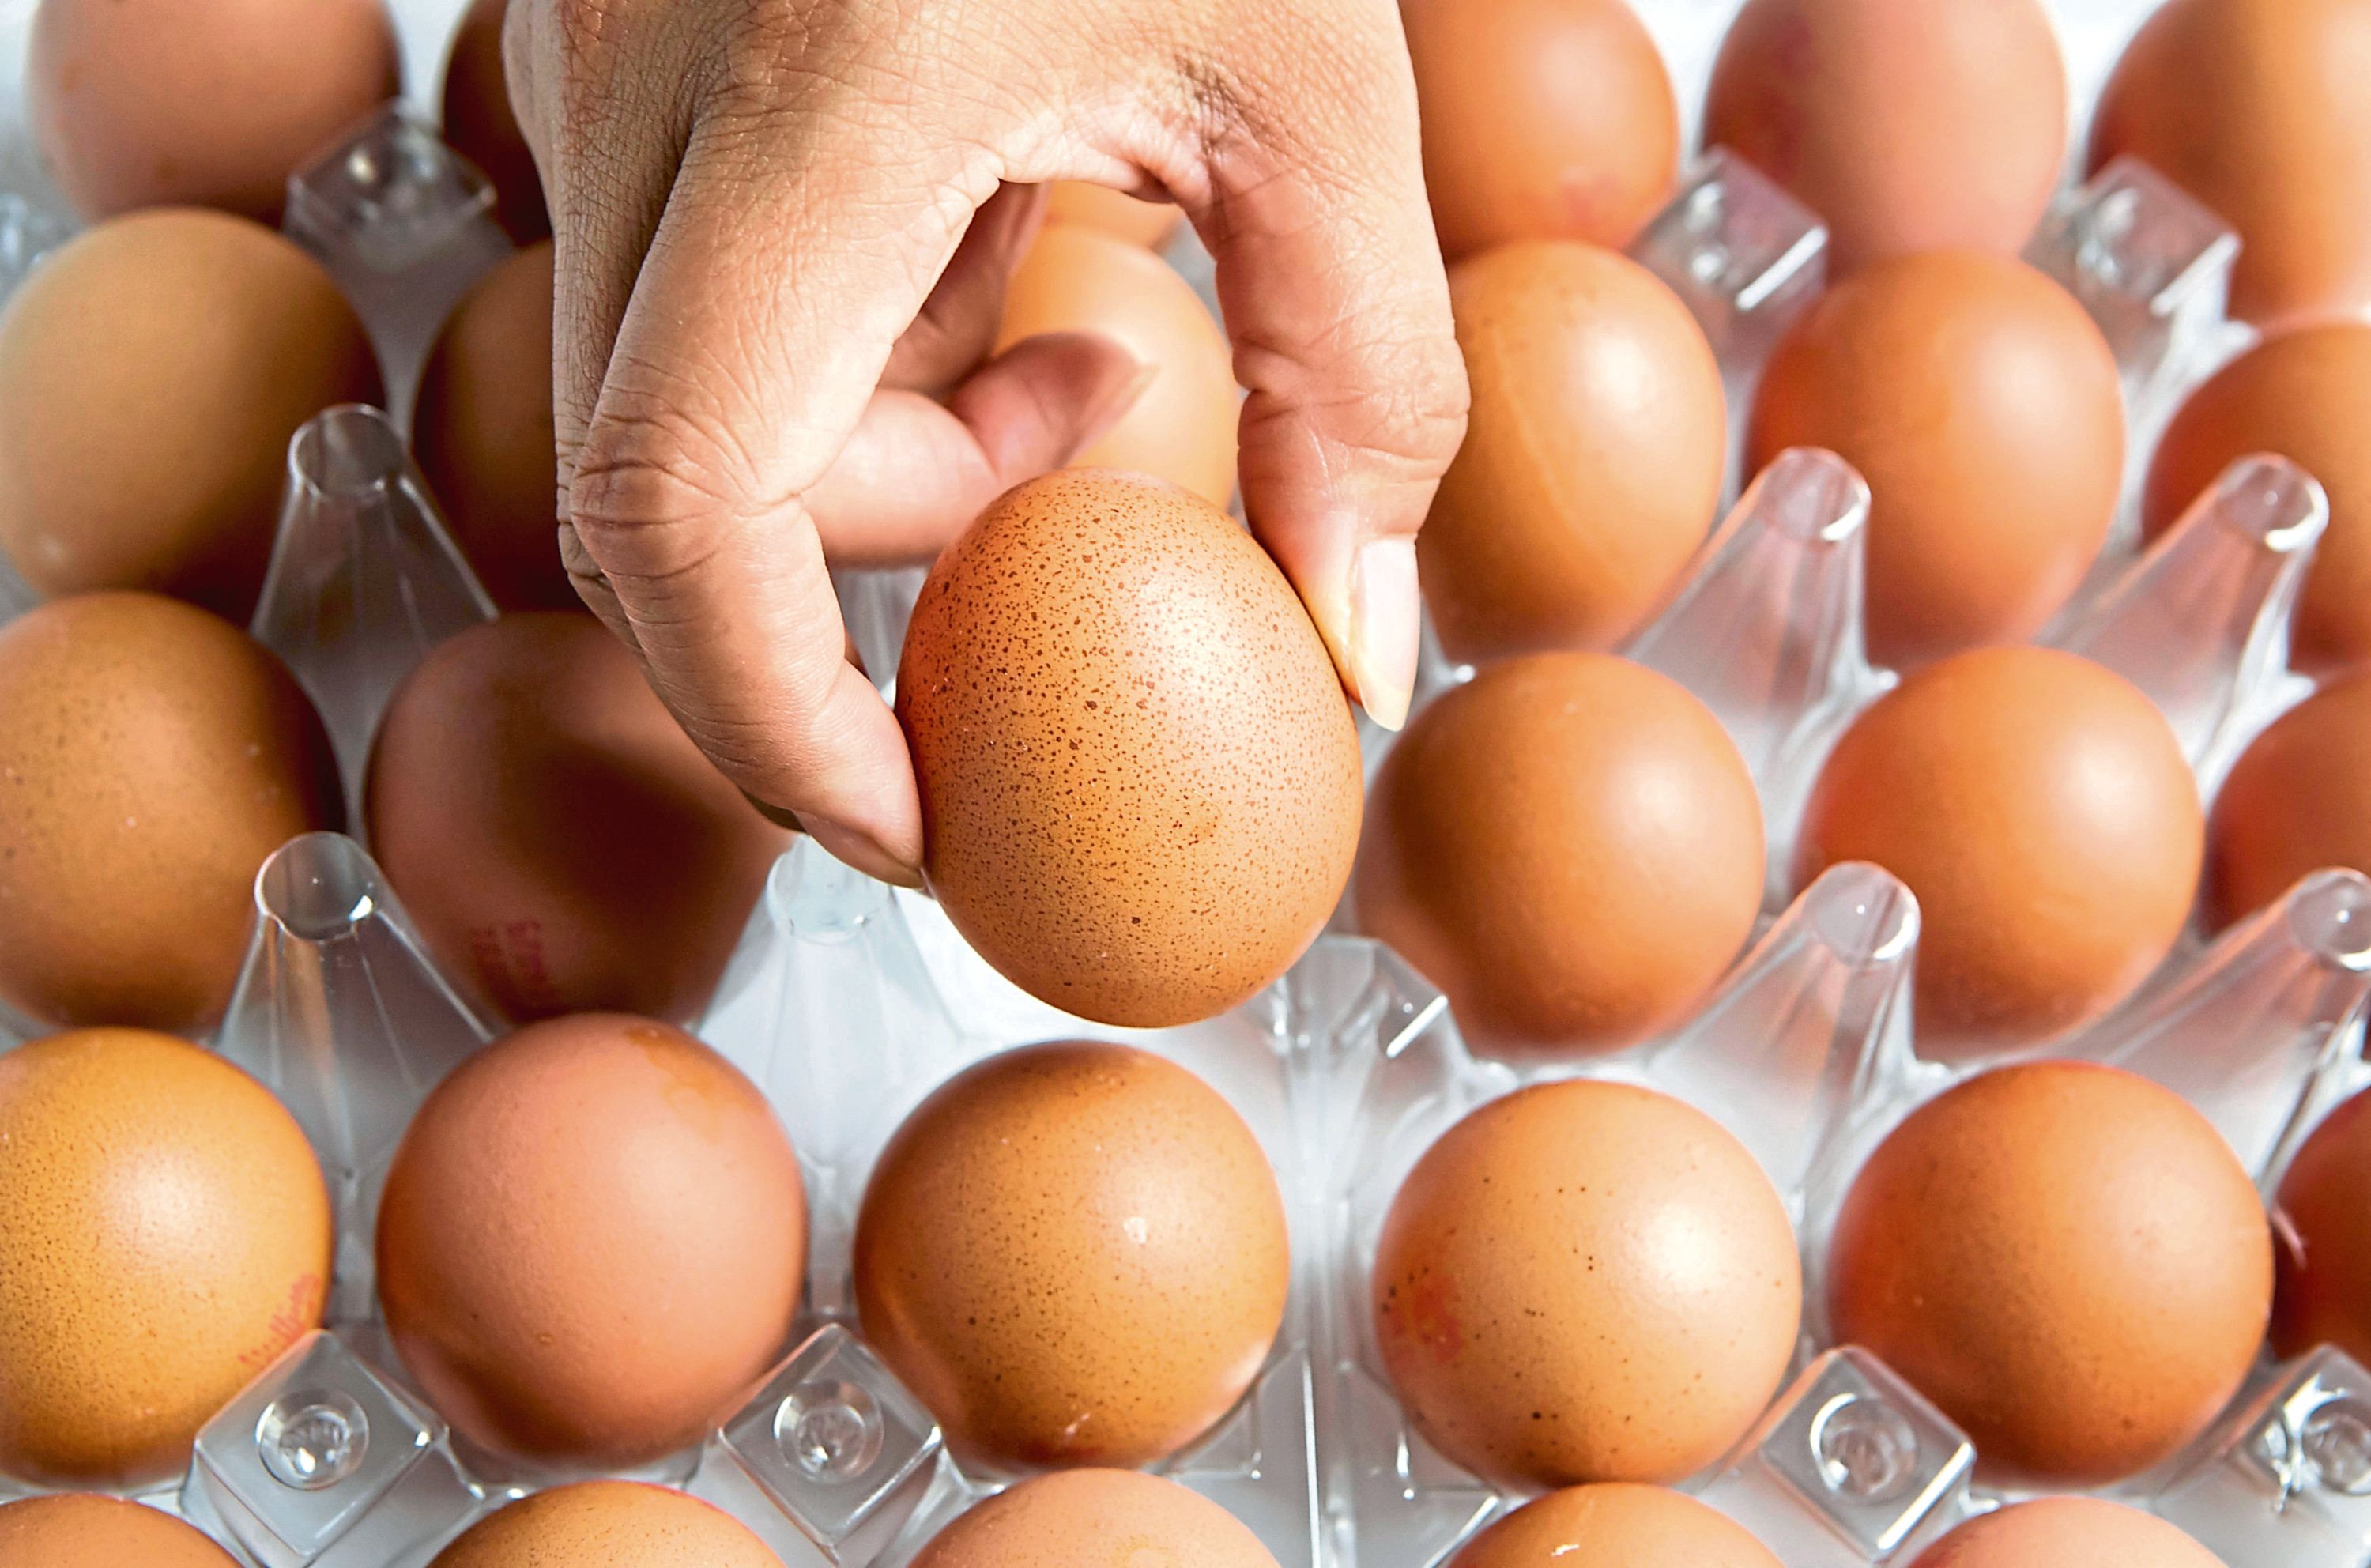 Industry leaders want consumers to move away from their obsession with large eggs.